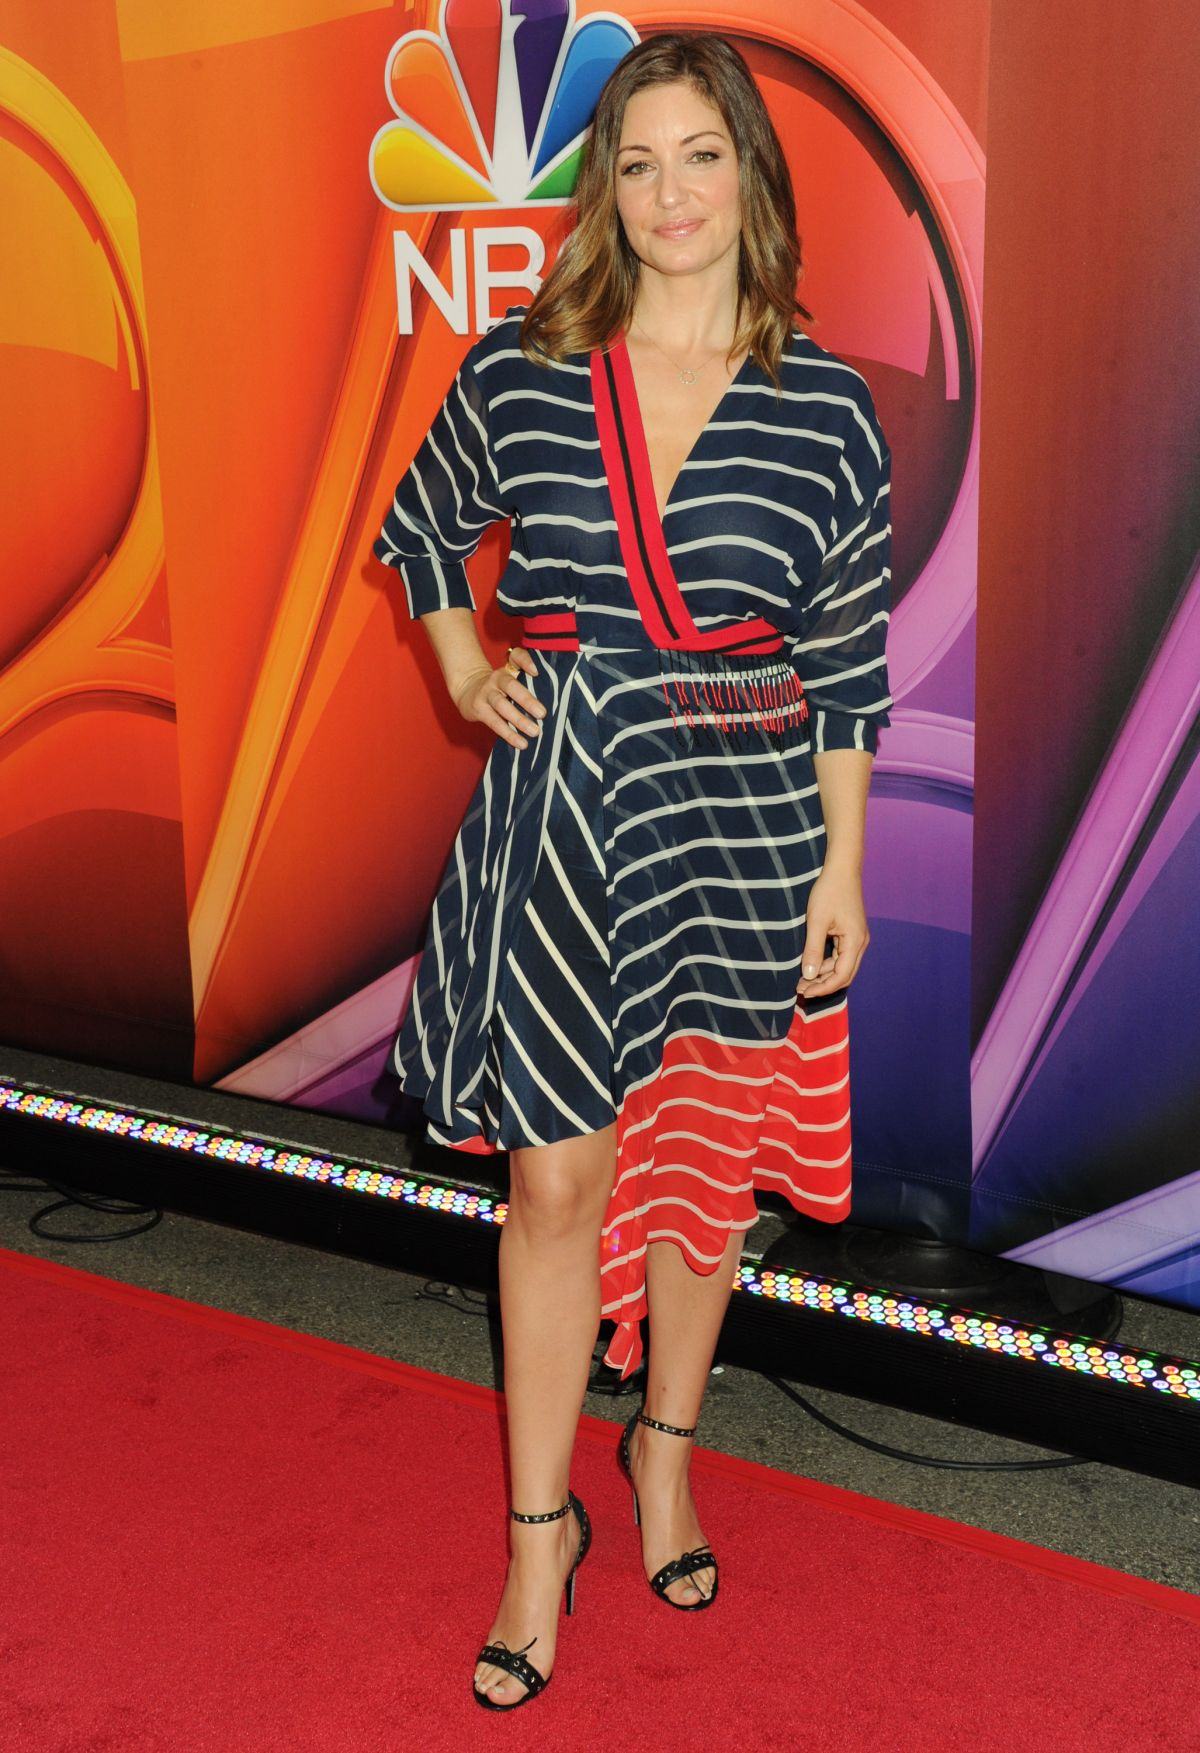 BIANCA KAJLICH at 2015 NBC Upfront Presentation in New York